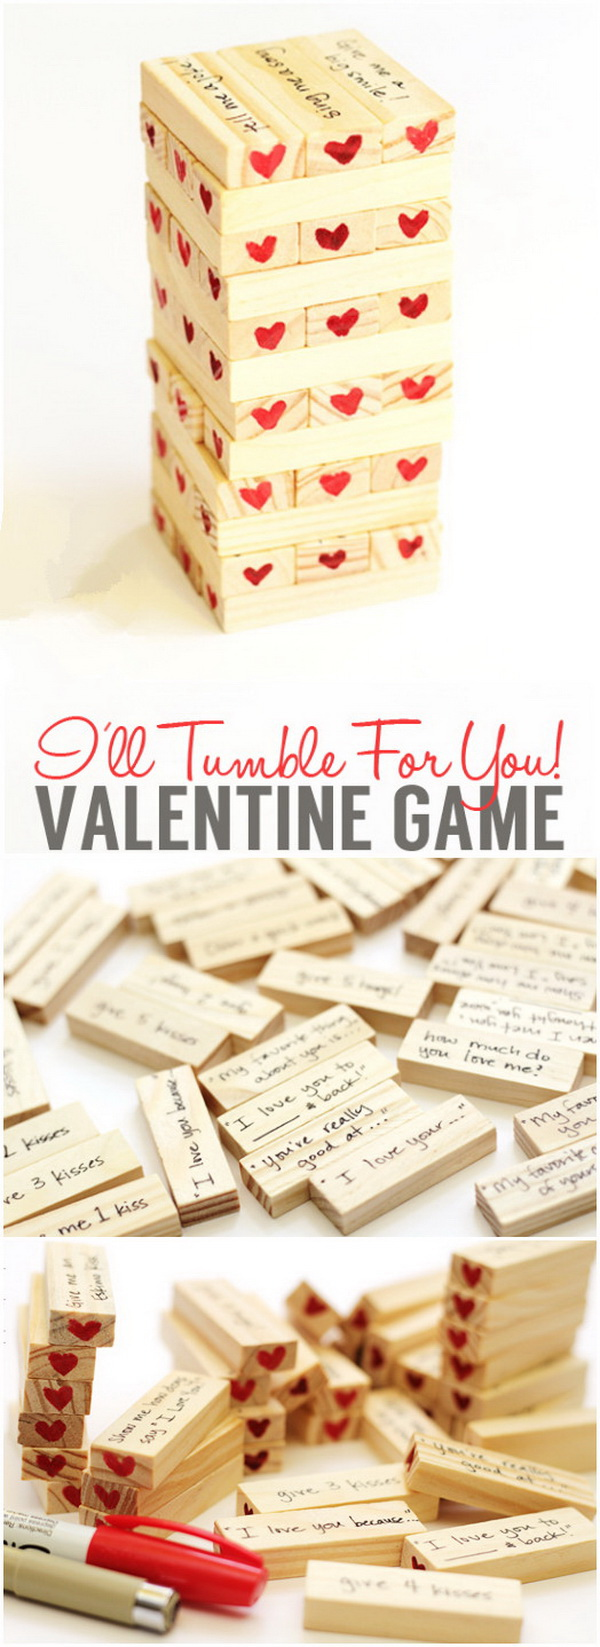 Easy DIY Valentine's Day Gifts for Boyfriend - Listing More